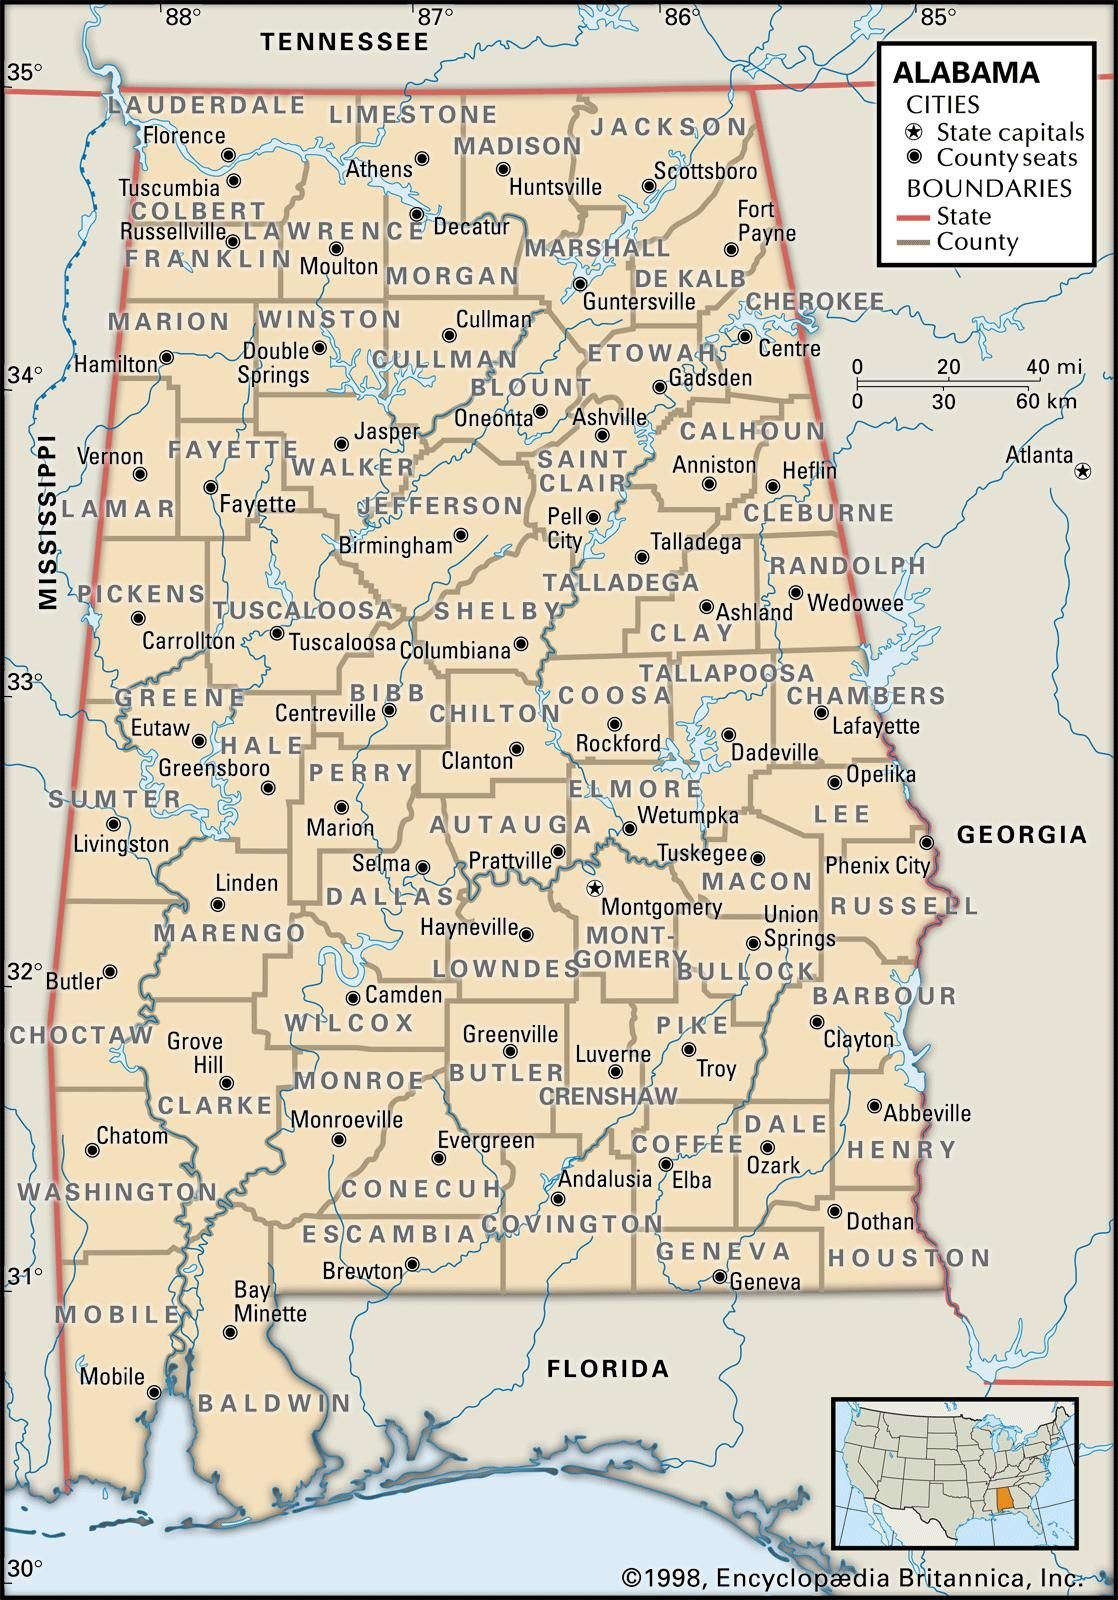 Map of Alabama county boundaries and county seats